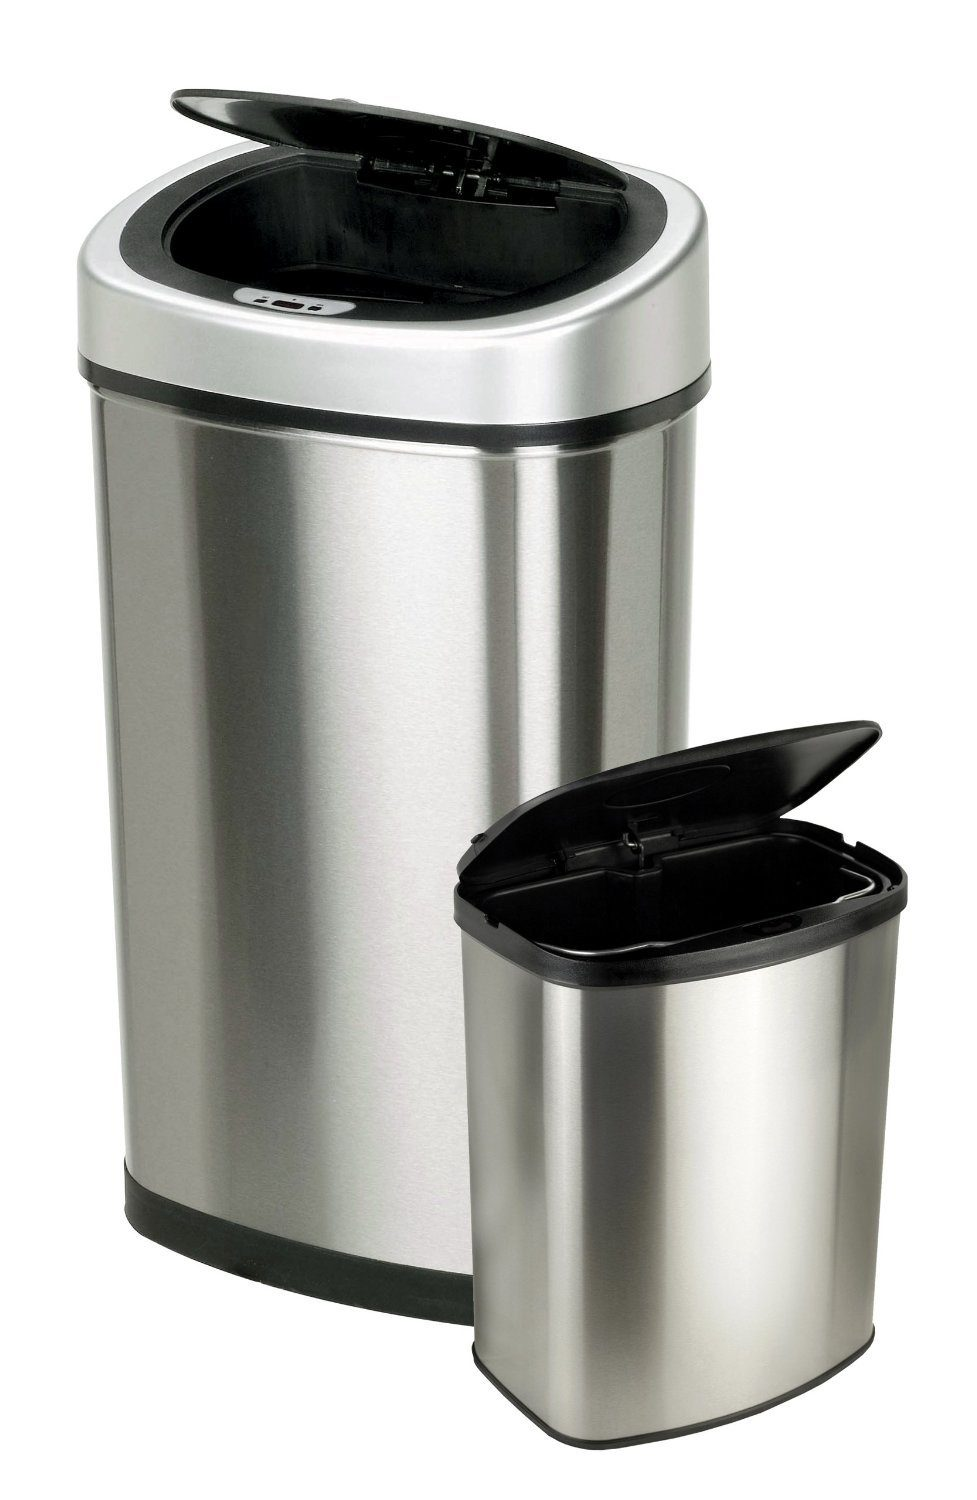 Nine Stars Touchless Automatic Motion Sensor Trash Can, Set of 2 Only $49.98 With FREE Shipping!